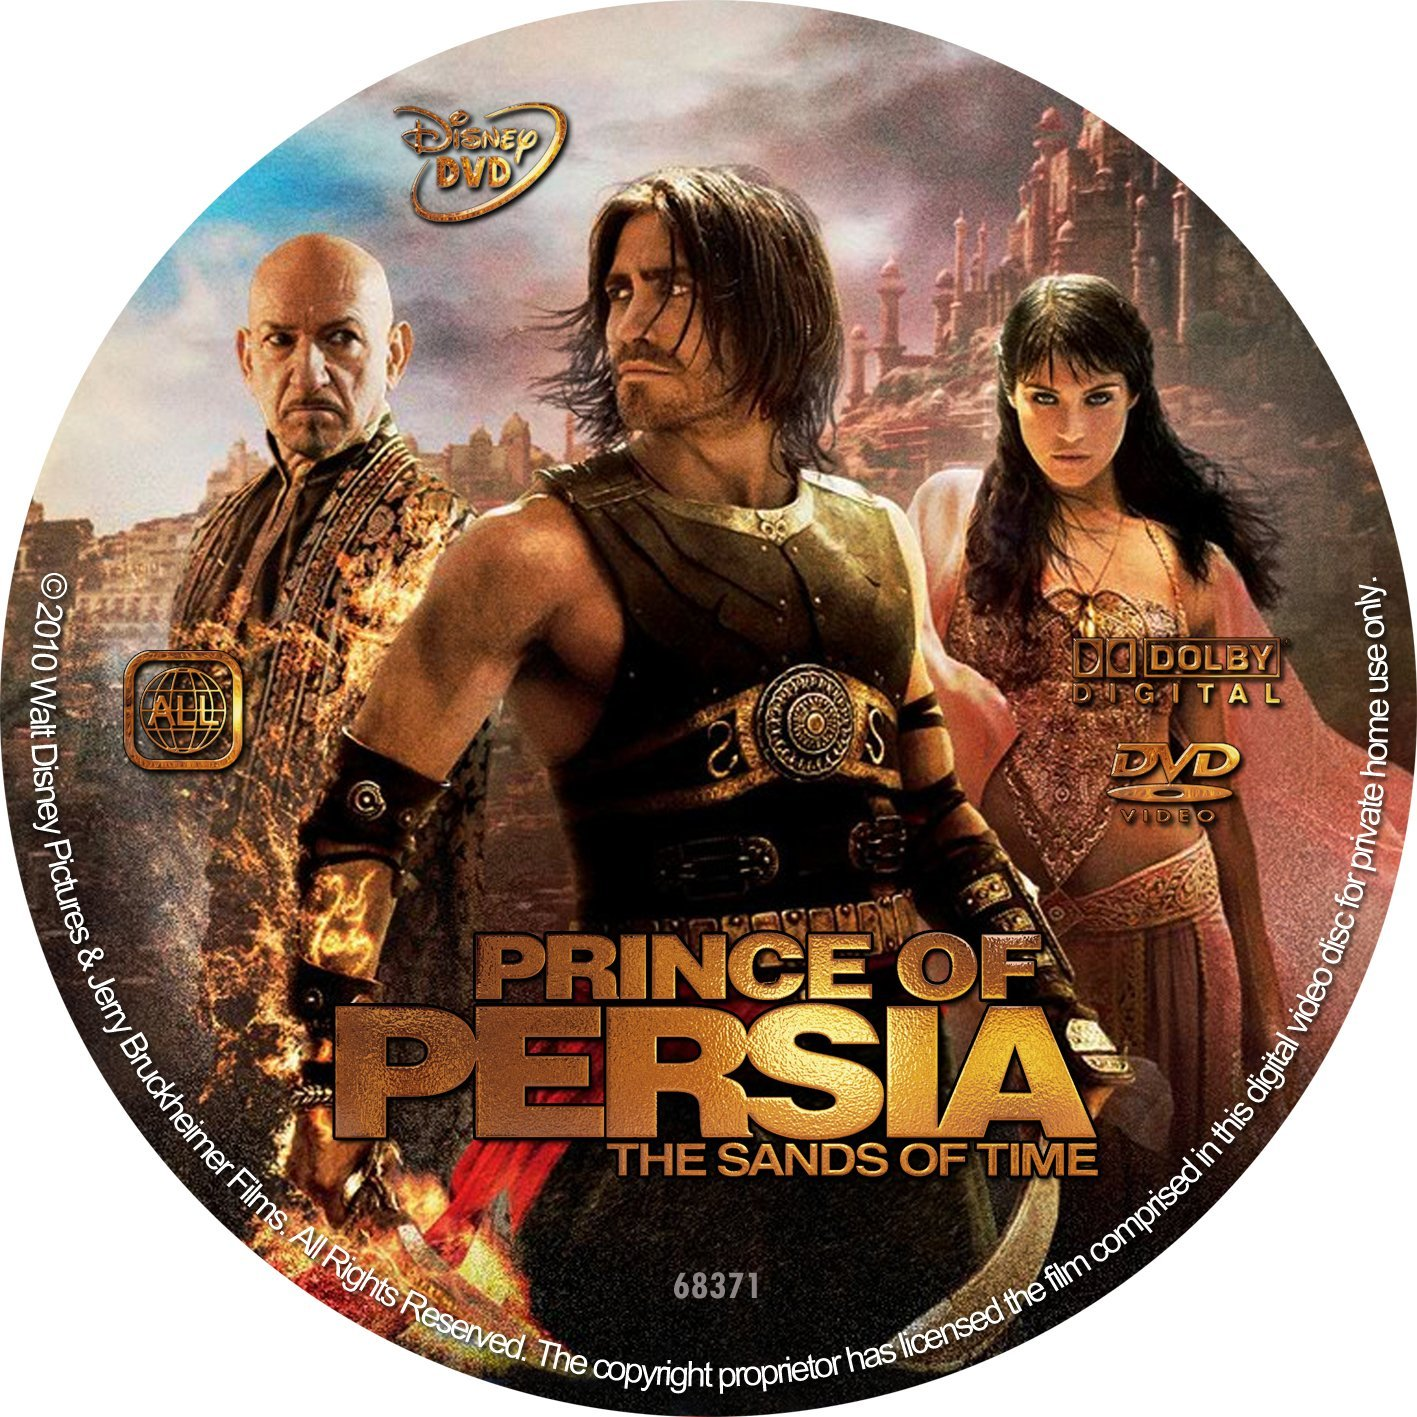 Prince Of Persia The Sands Of Time 2010 R2 Dvd Covers And Labels